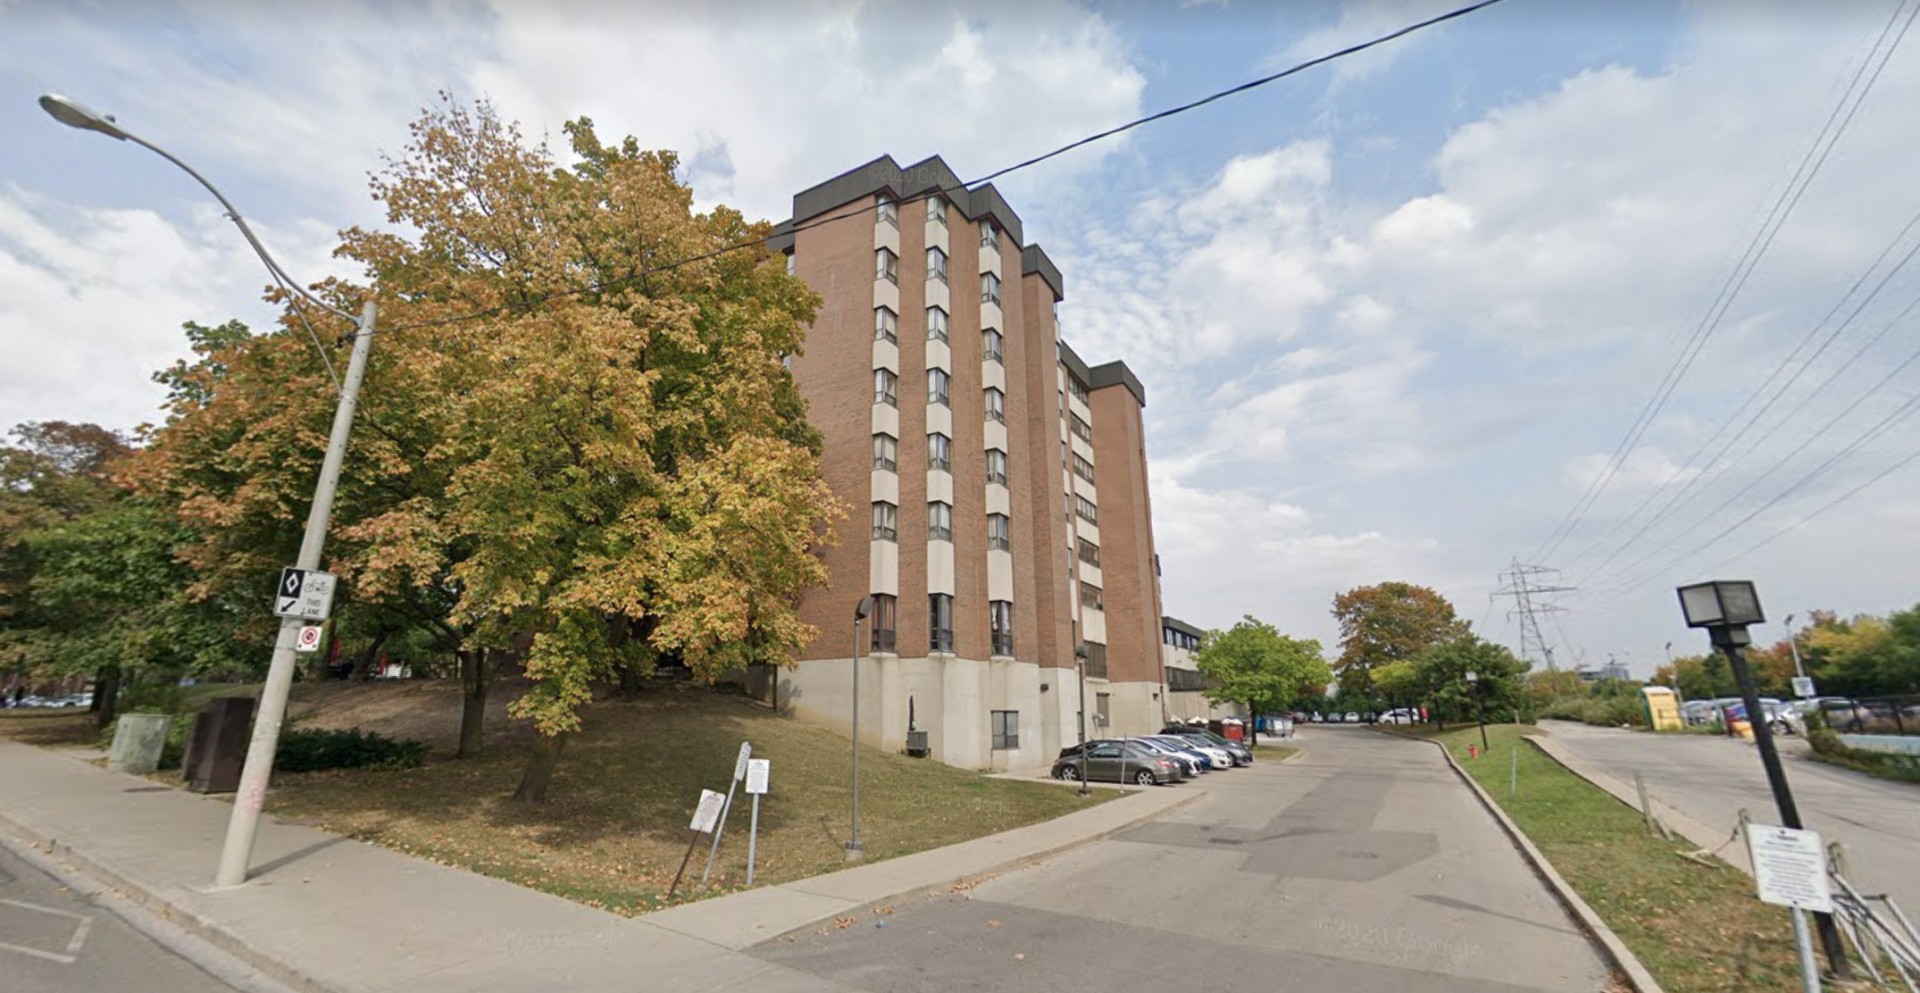 Toronto detects first variant COVID-19 case at a city-run care home